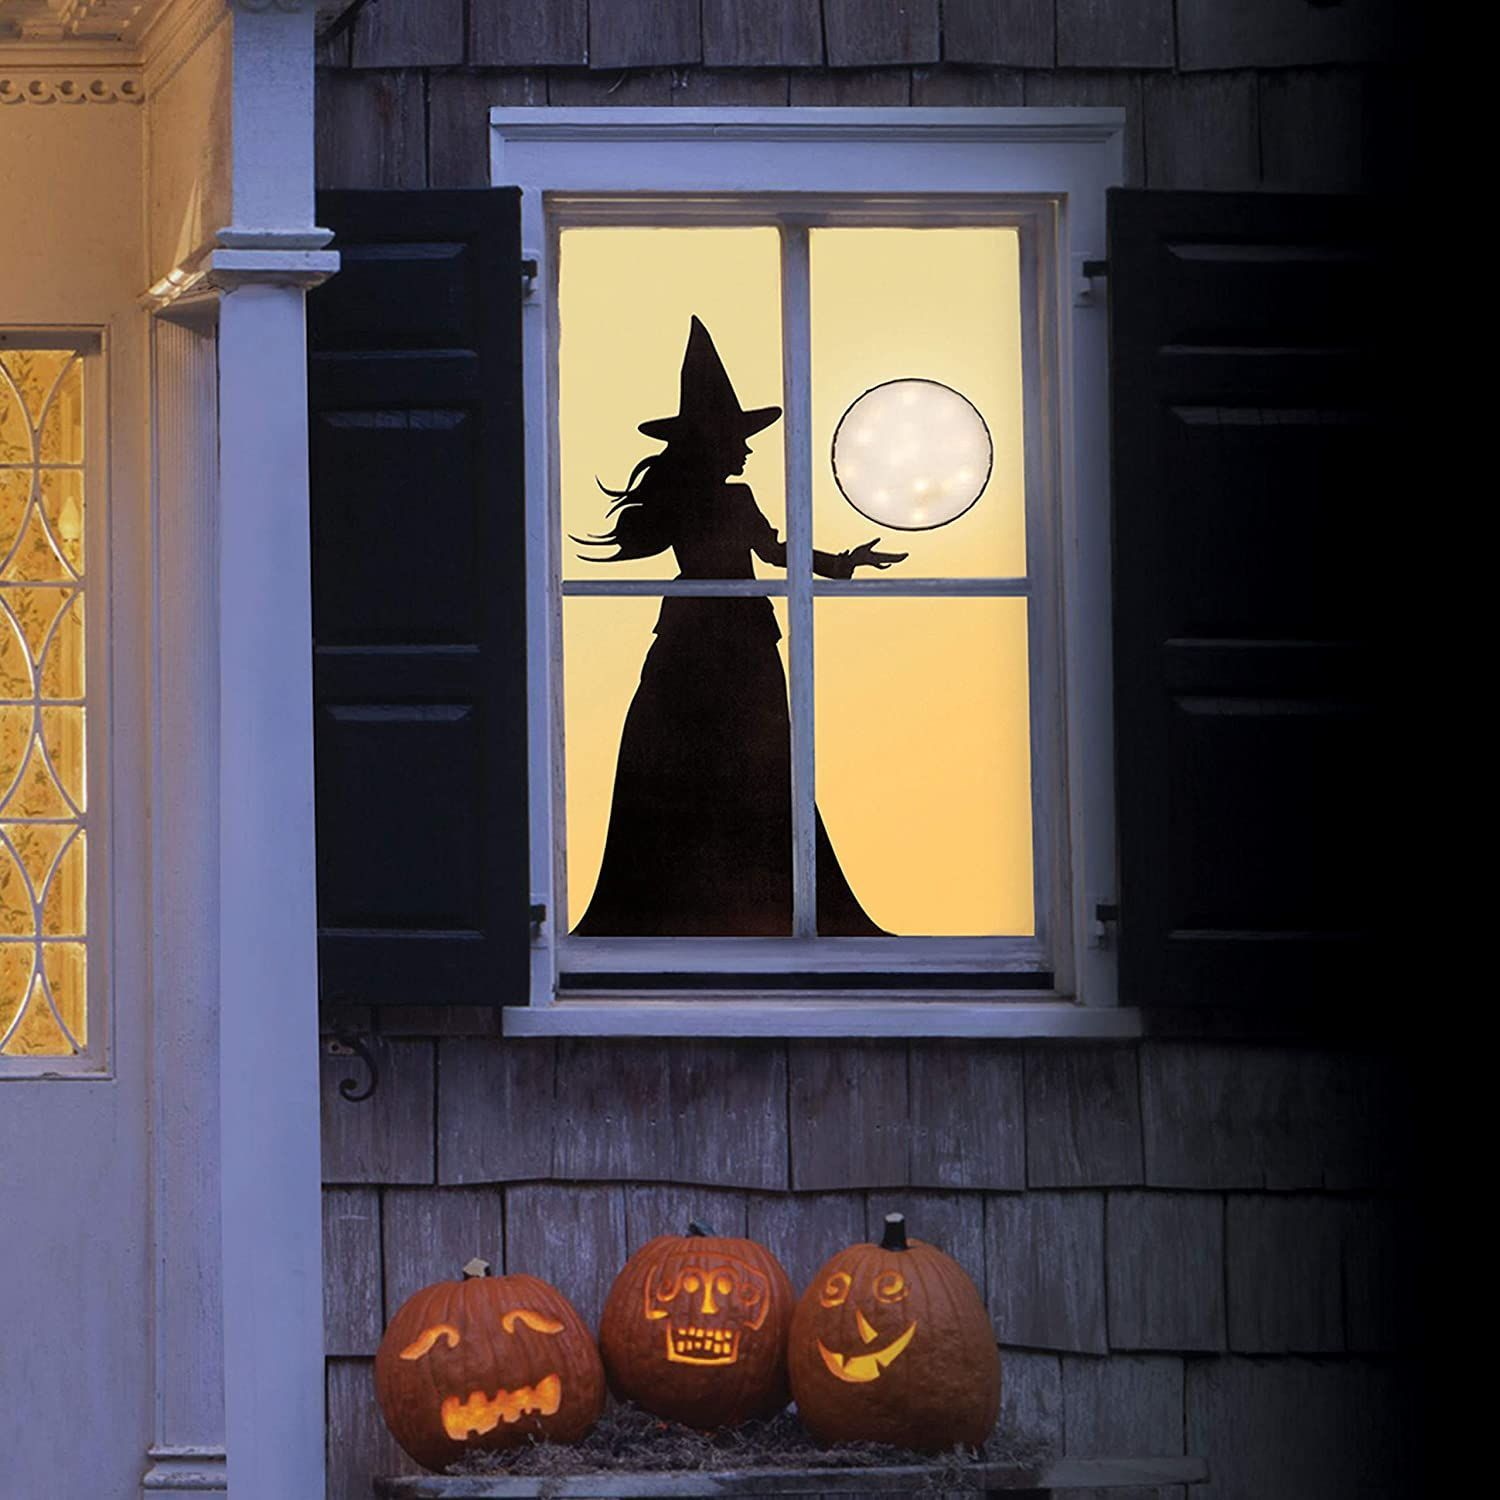 35 Ideas To Decorate Windows With Silhouettes On Halloween Shelterness